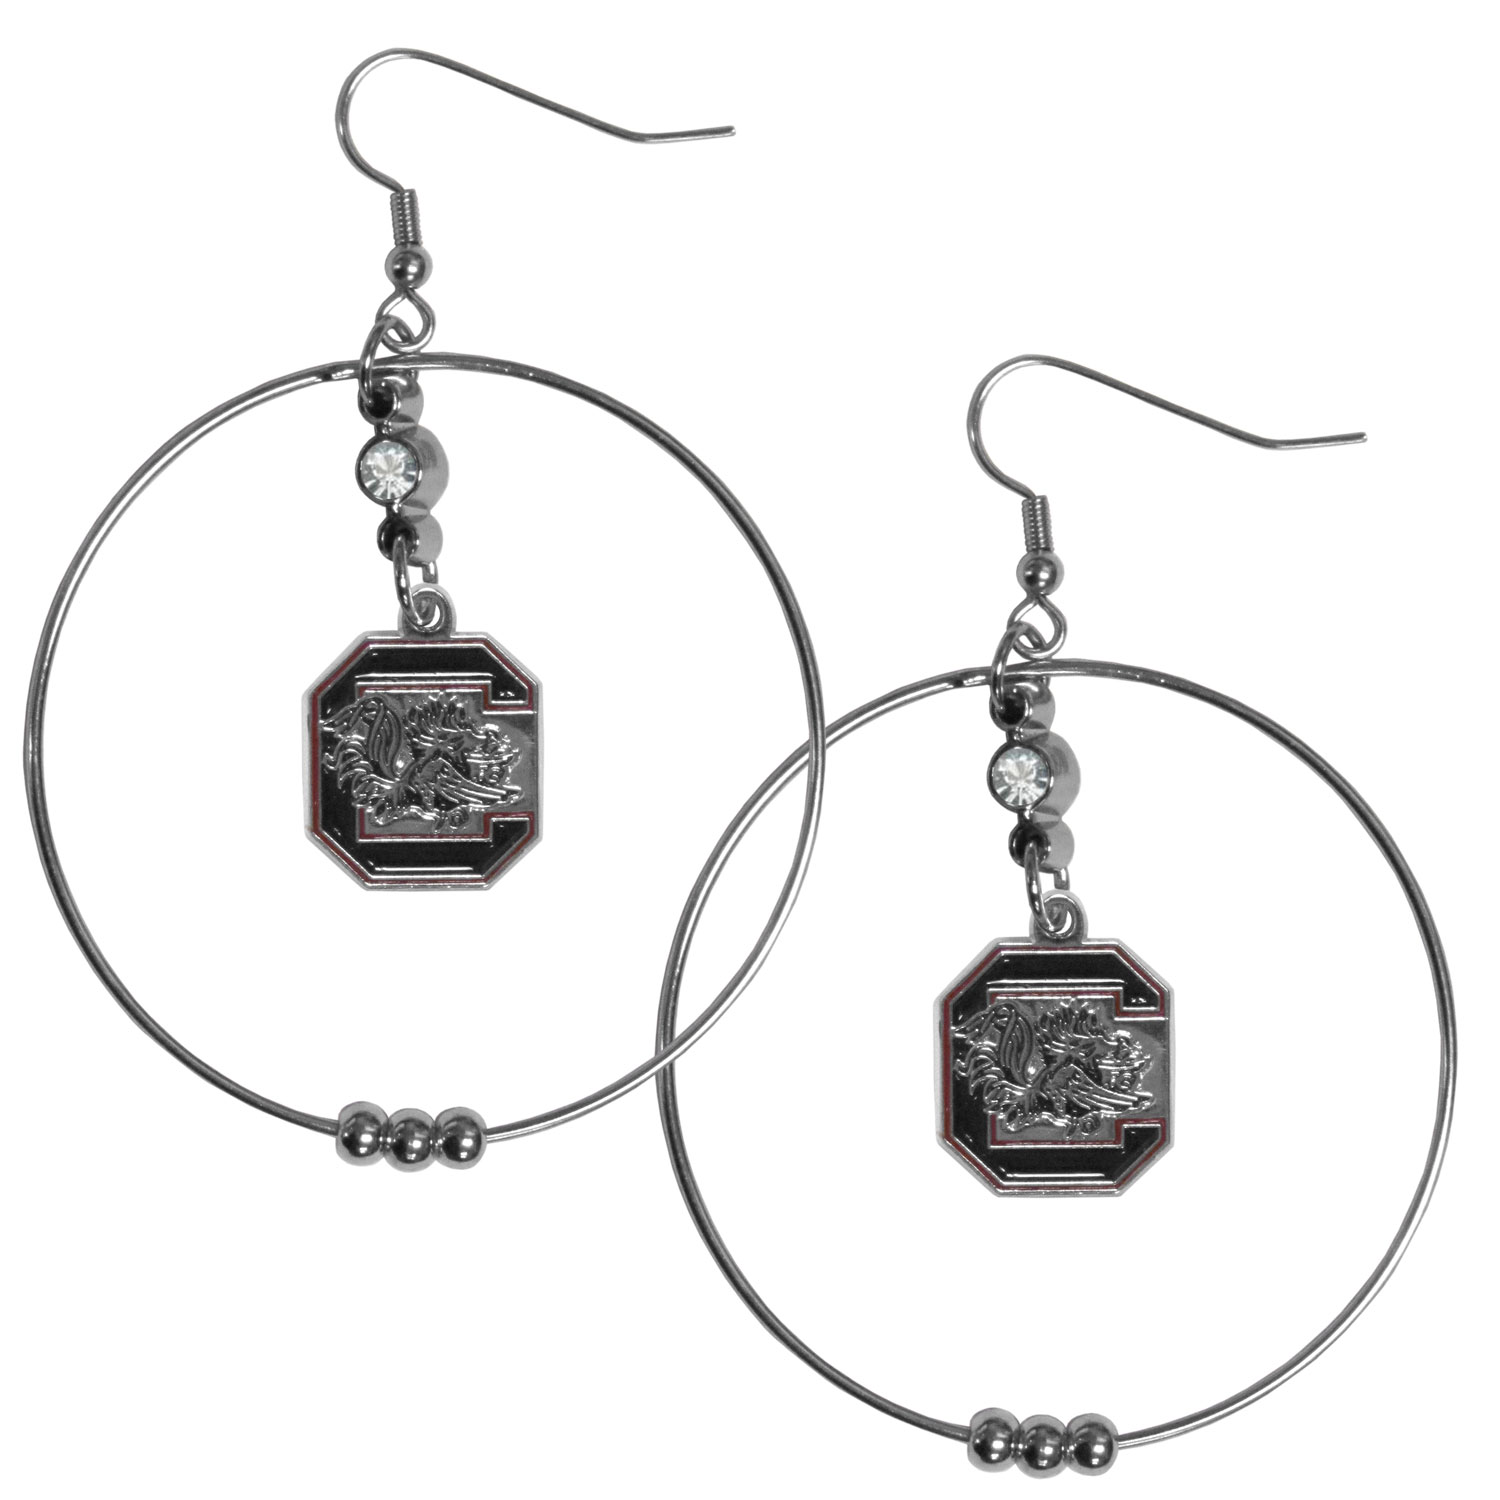 S. Carolina Gamecocks 2 Inch Hoop Earrings - Our large hoop earrings have a fully cast and enameled S. Carolina Gamecocks charm with enameled detail and a high polish nickel free chrome finish and rhinestone access. Hypoallergenic fishhook posts.